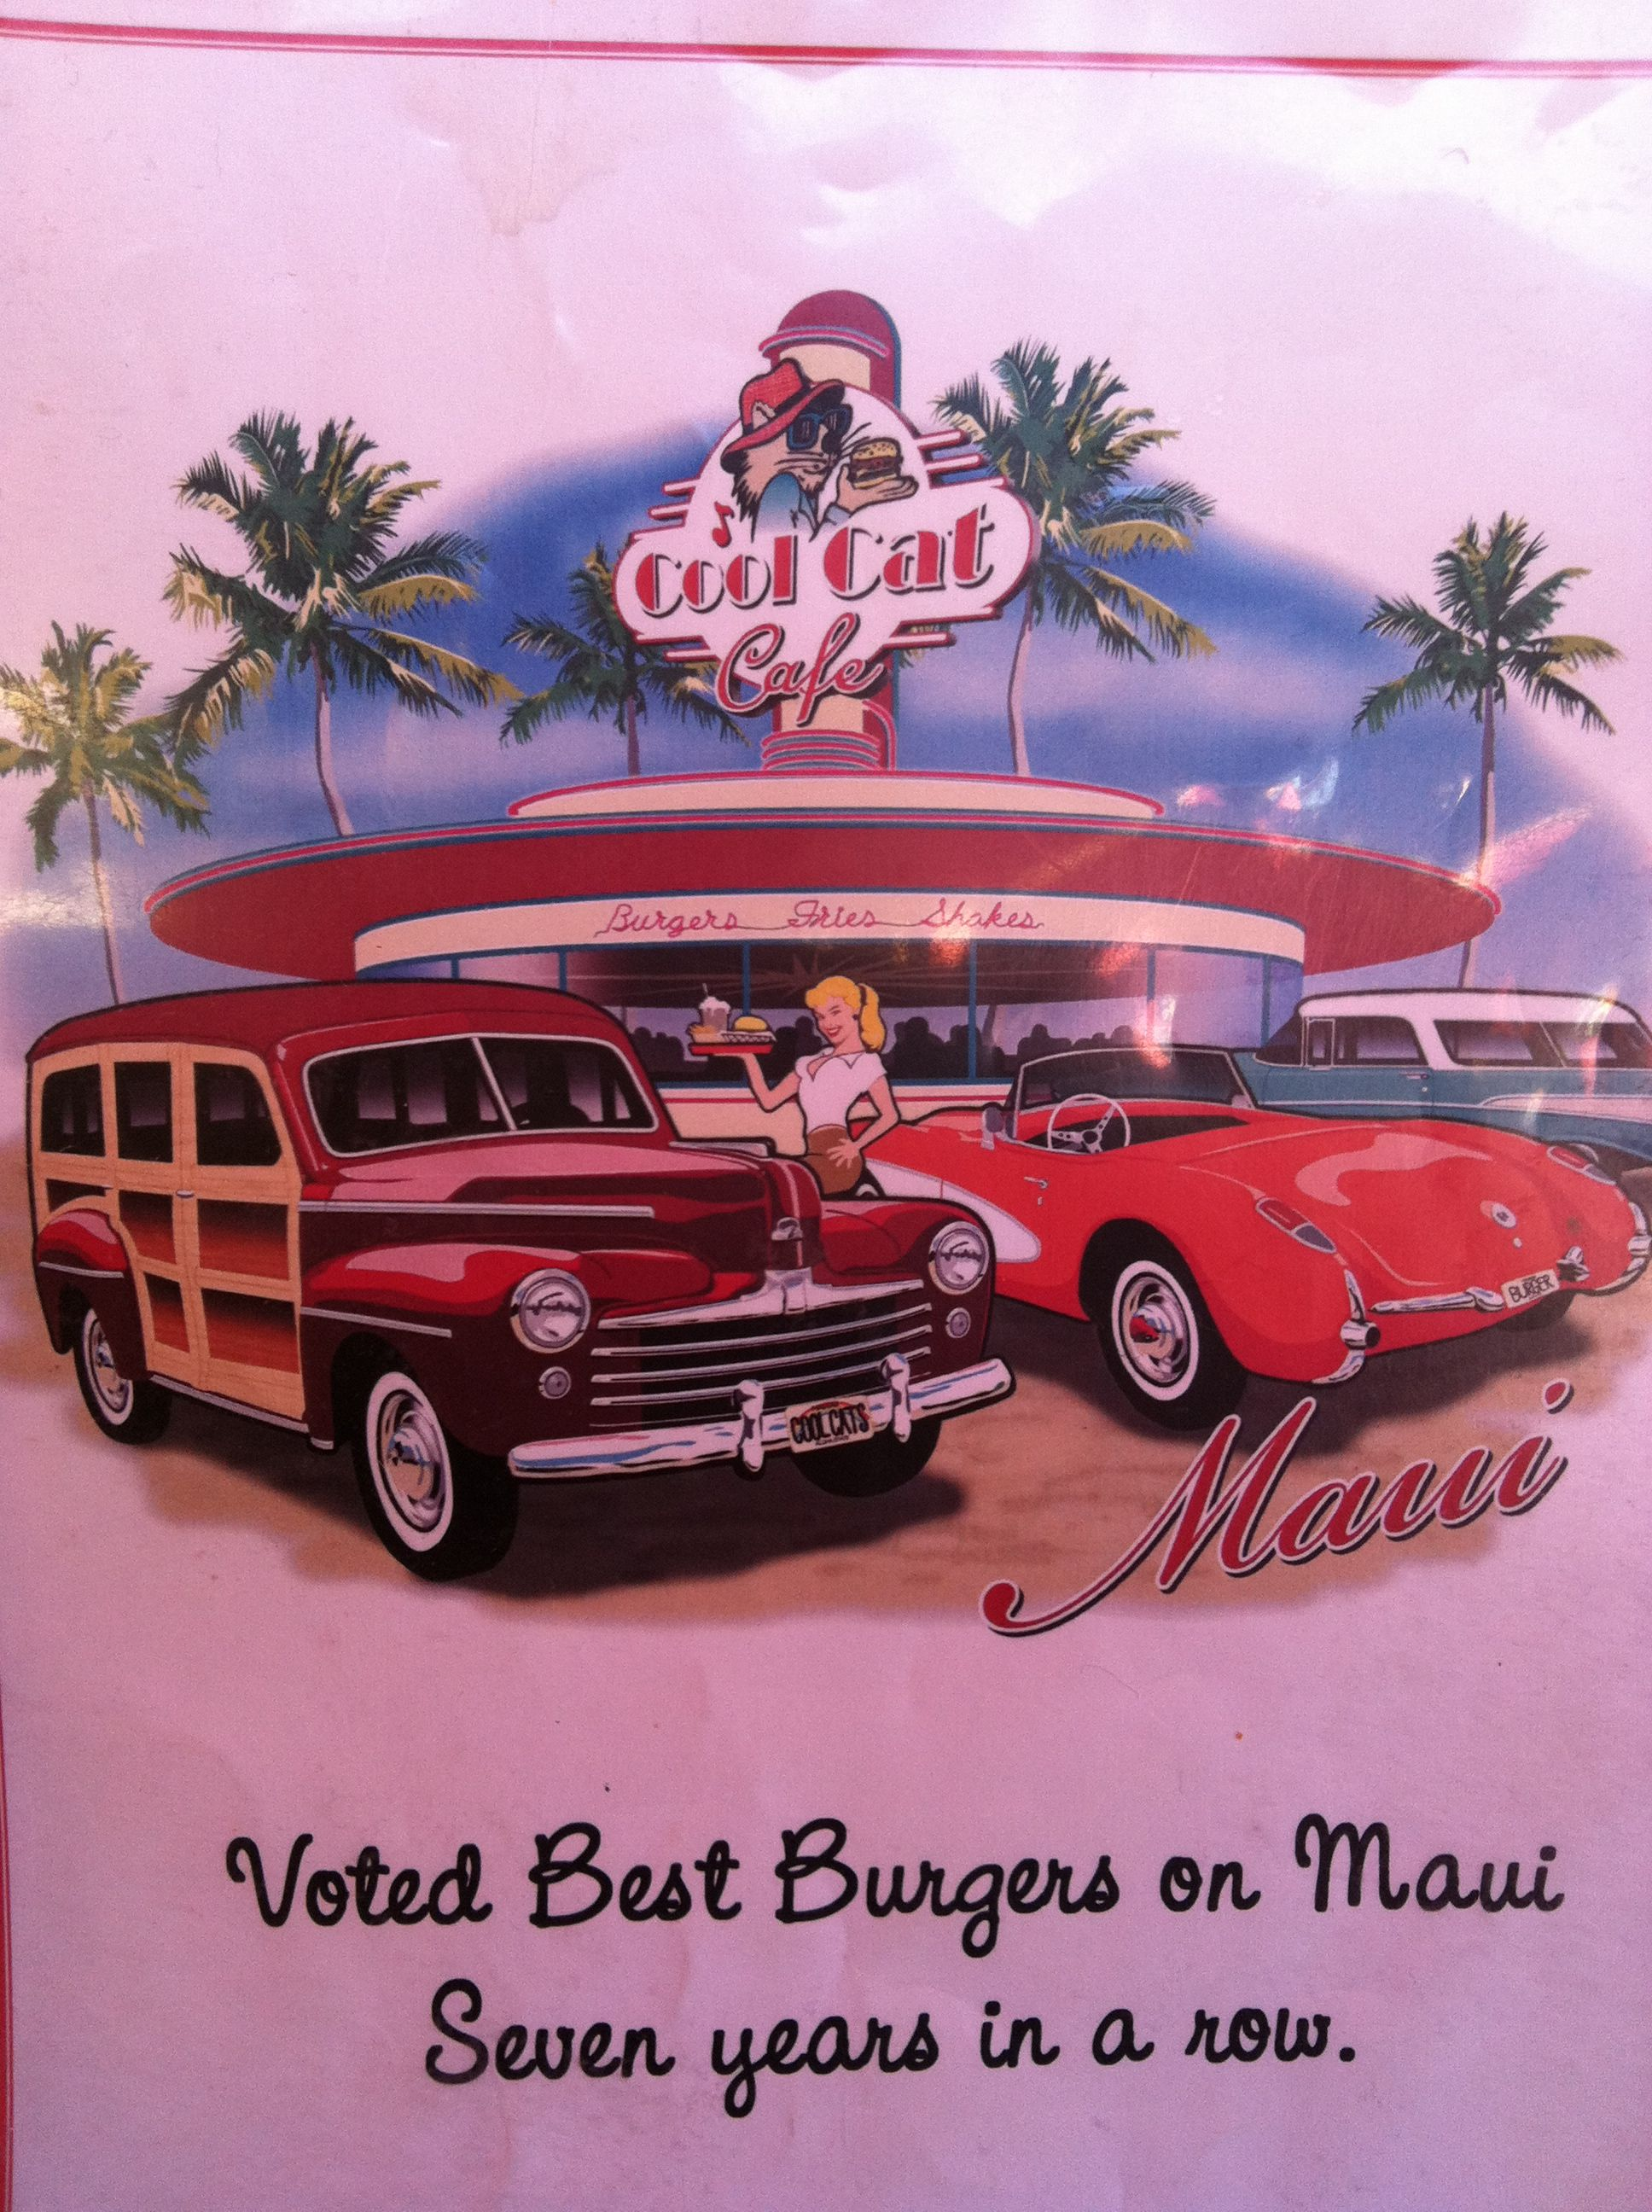 Cool Cat Café in Lahaina, Maui. Best burgers ever made